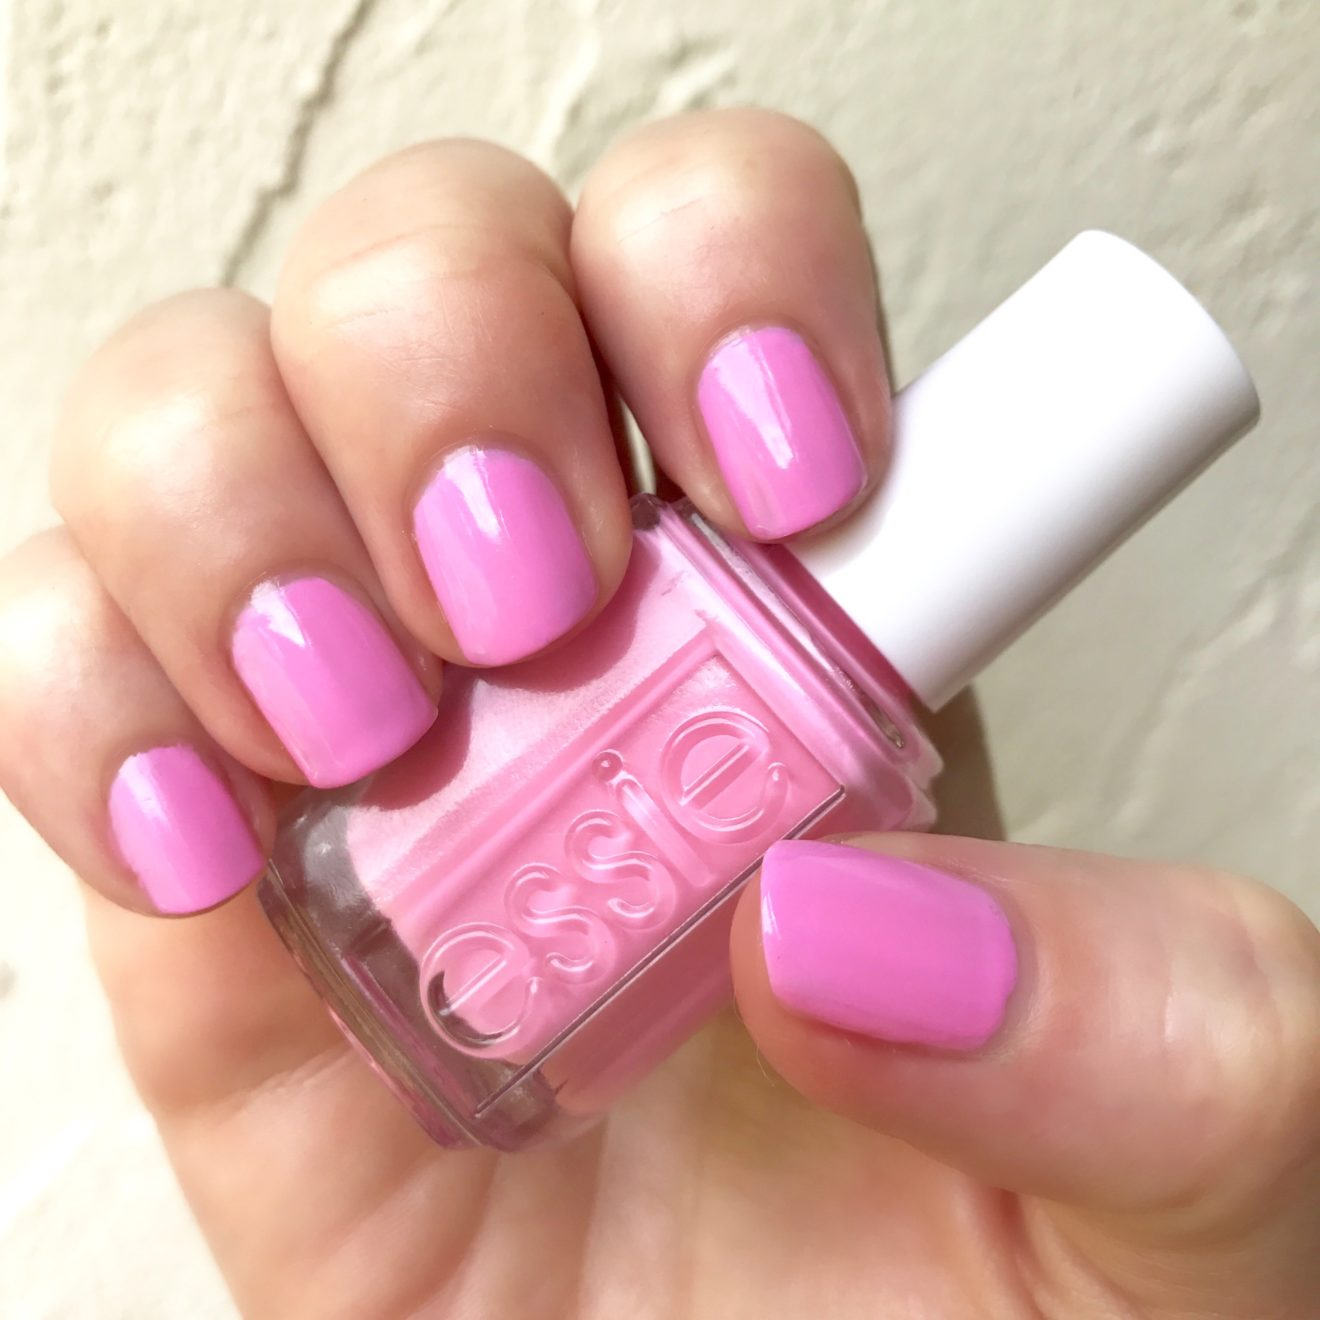 California road tripping: essie spring 2017 | Daly Beauty